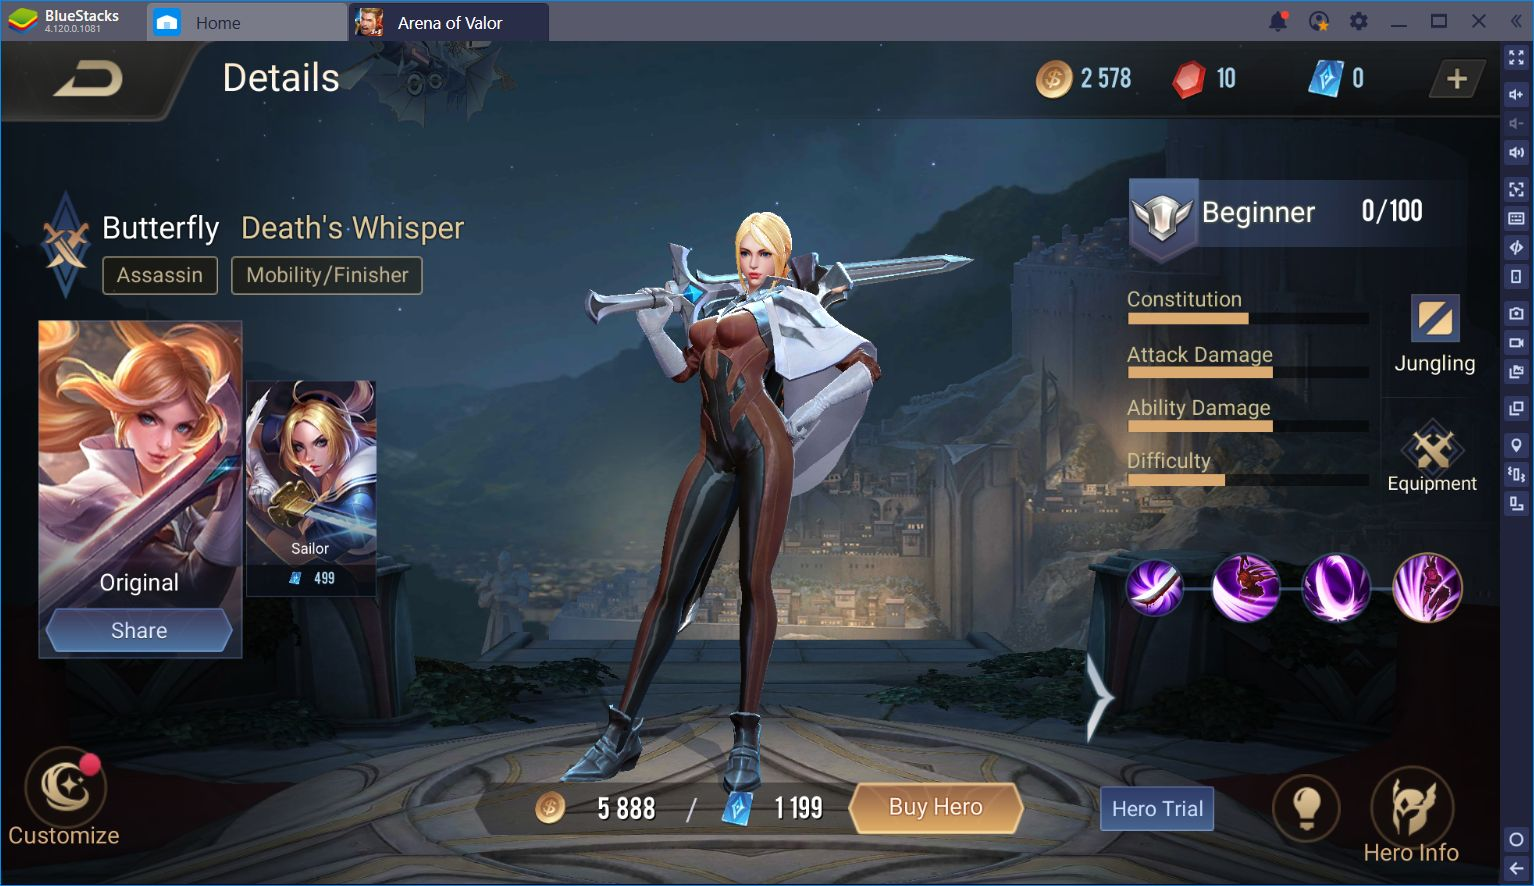 The Different Character Types in Arena of Valor